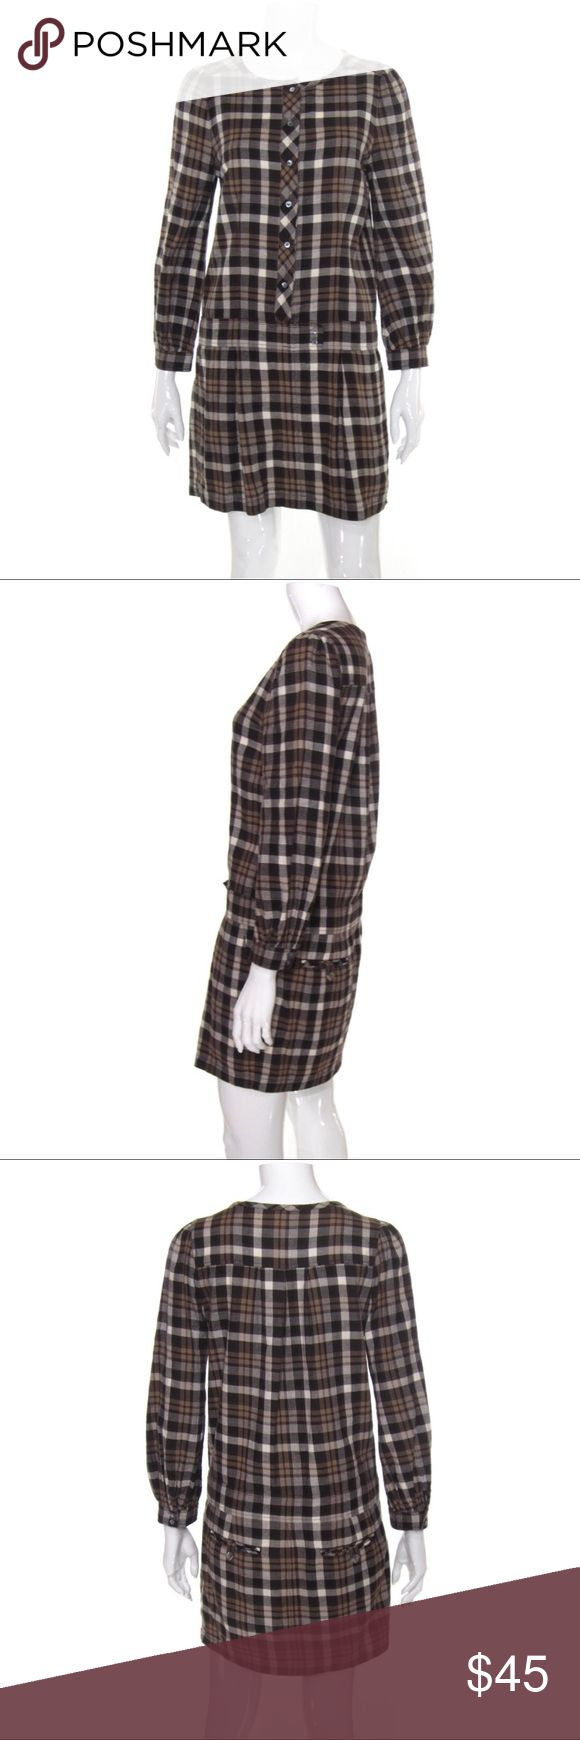 Juicy Couture Brown Plaid Flannel Shirt Dress Features long sleeves, a rounded neckline and a button front closure. Dropped waist features a tab button accent, functional tuck pockets at the hips/thighs. Back button closure pockets at the rear. Slight ruffling to the sleeves at the shoulder, very subtle, and functional buttons at the sleeve cuffs. Mini length, hits mid-thigh on most wearers. Material composition is 100% cotton, super soft flannel, lightweight and rigid/non-stretch. Tagged as…